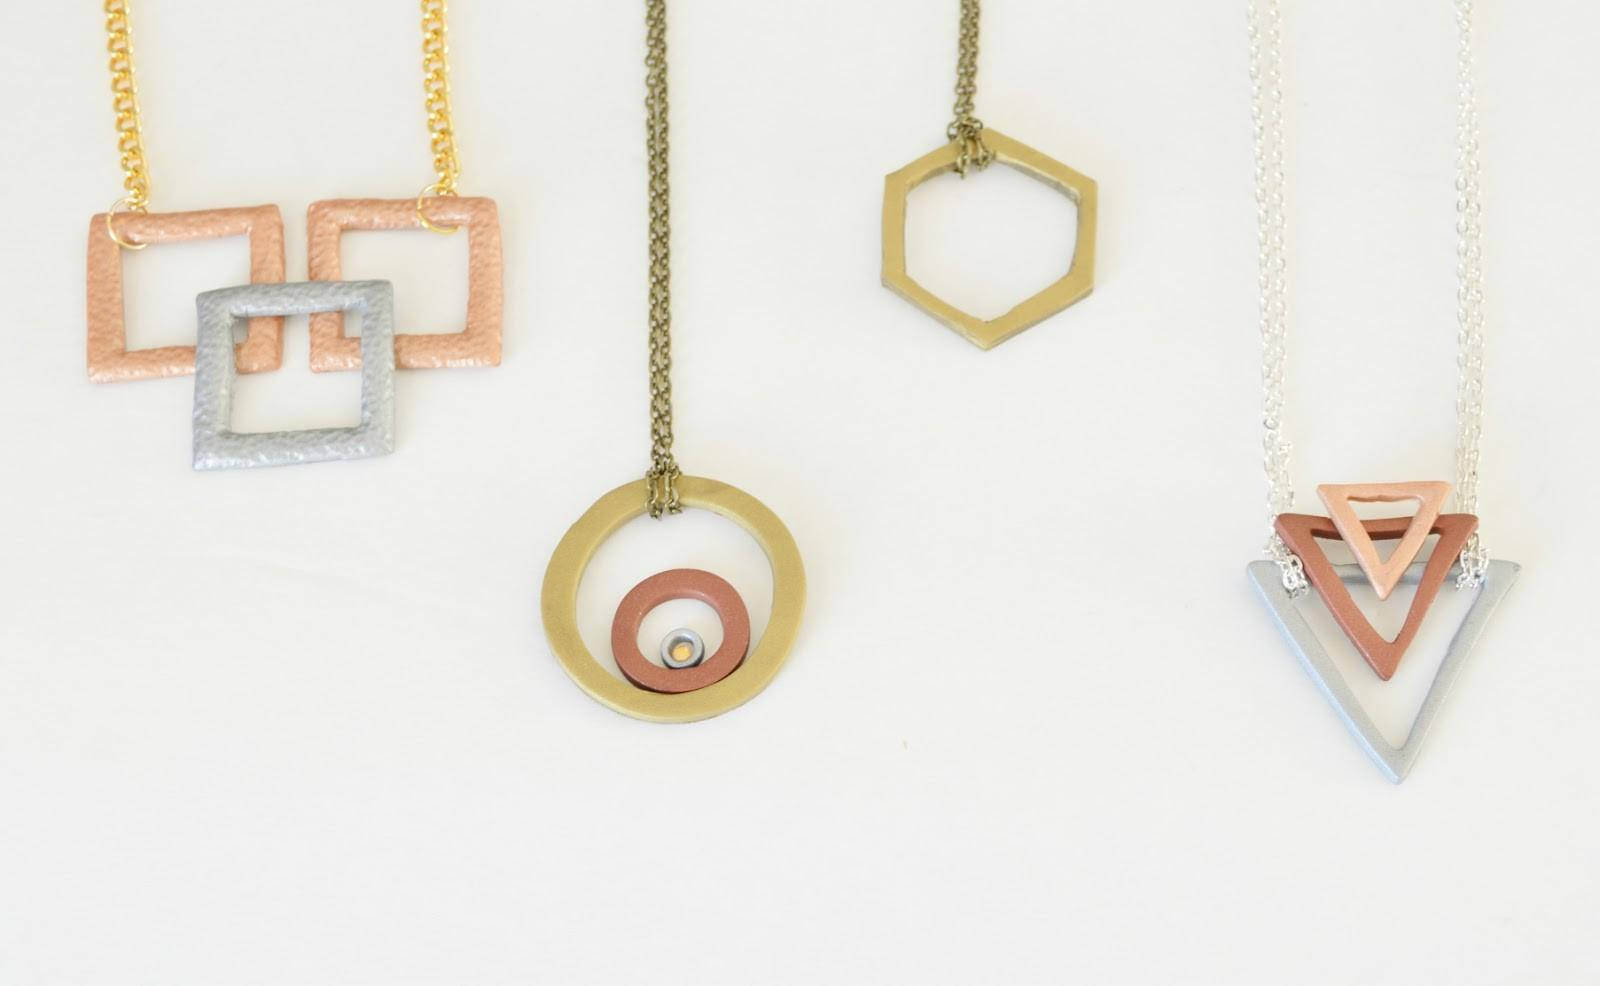 Vikalpah Diy Faux Metal Geometric Necklace Using Clay